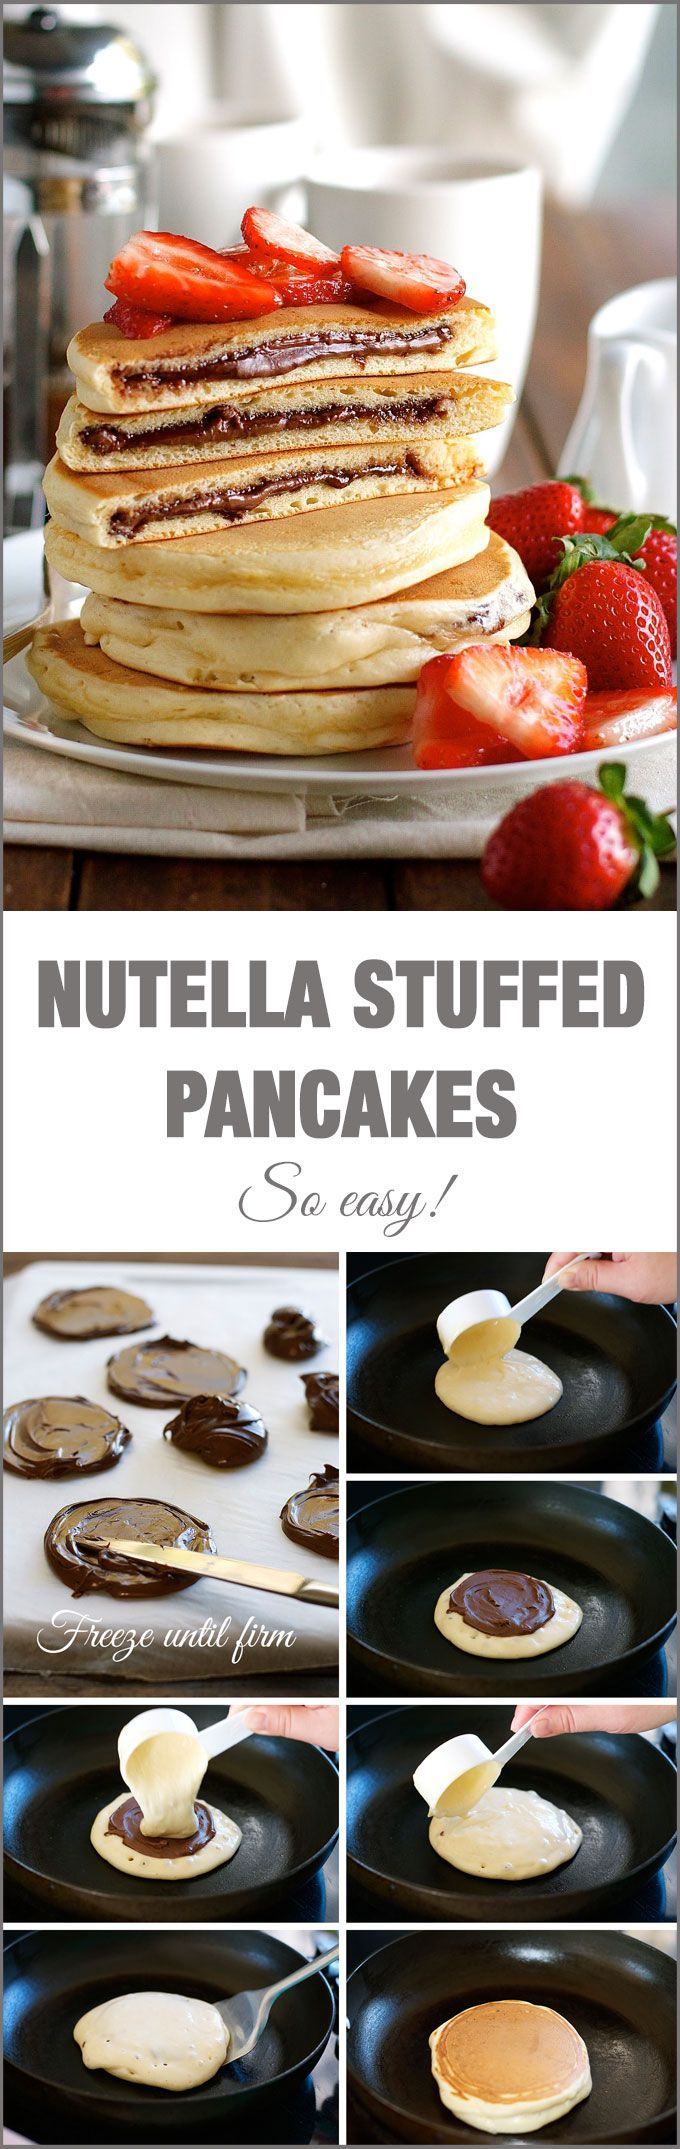 Nutella Stuffed Pancakes - frozen Nutella discs makes it a breeze to make the Nutella stuffed pancakes!#nutella